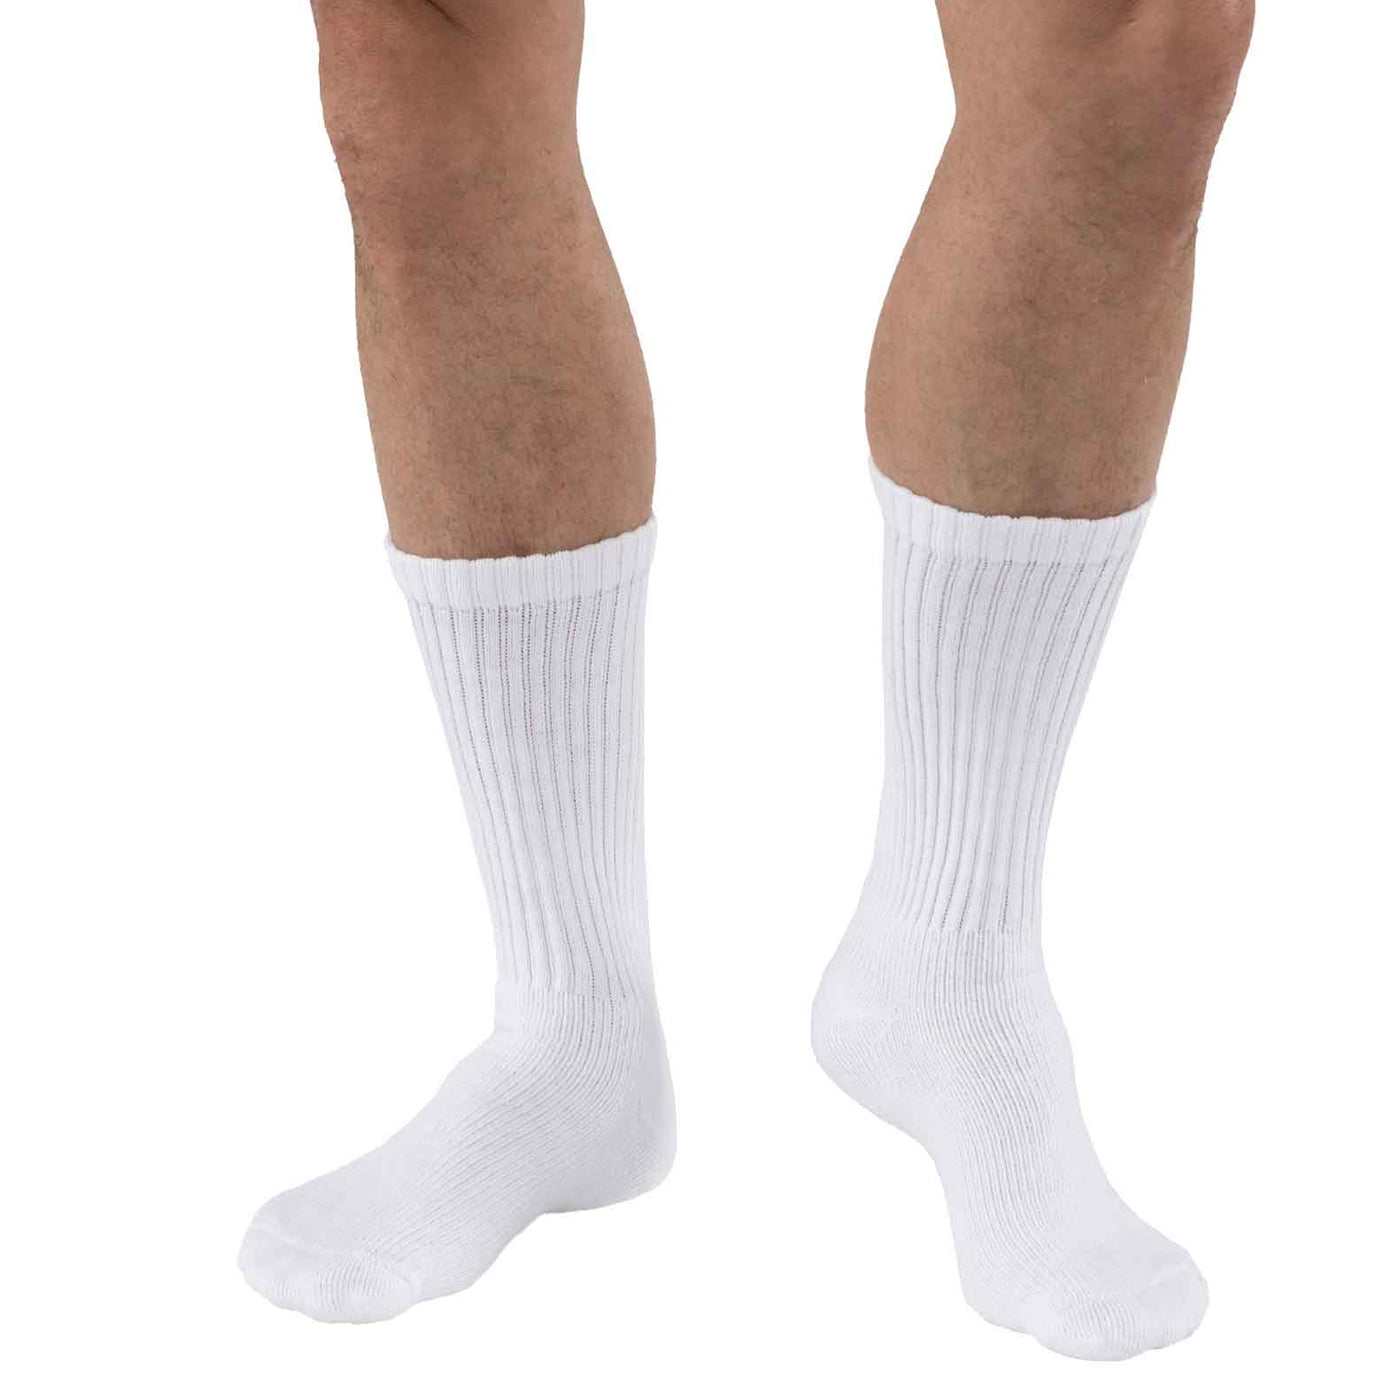 cc67ab2657e Jobst Sensifoot Diabetic Crew Sock Light Compression 8-15mmHg — BrightLife  Direct